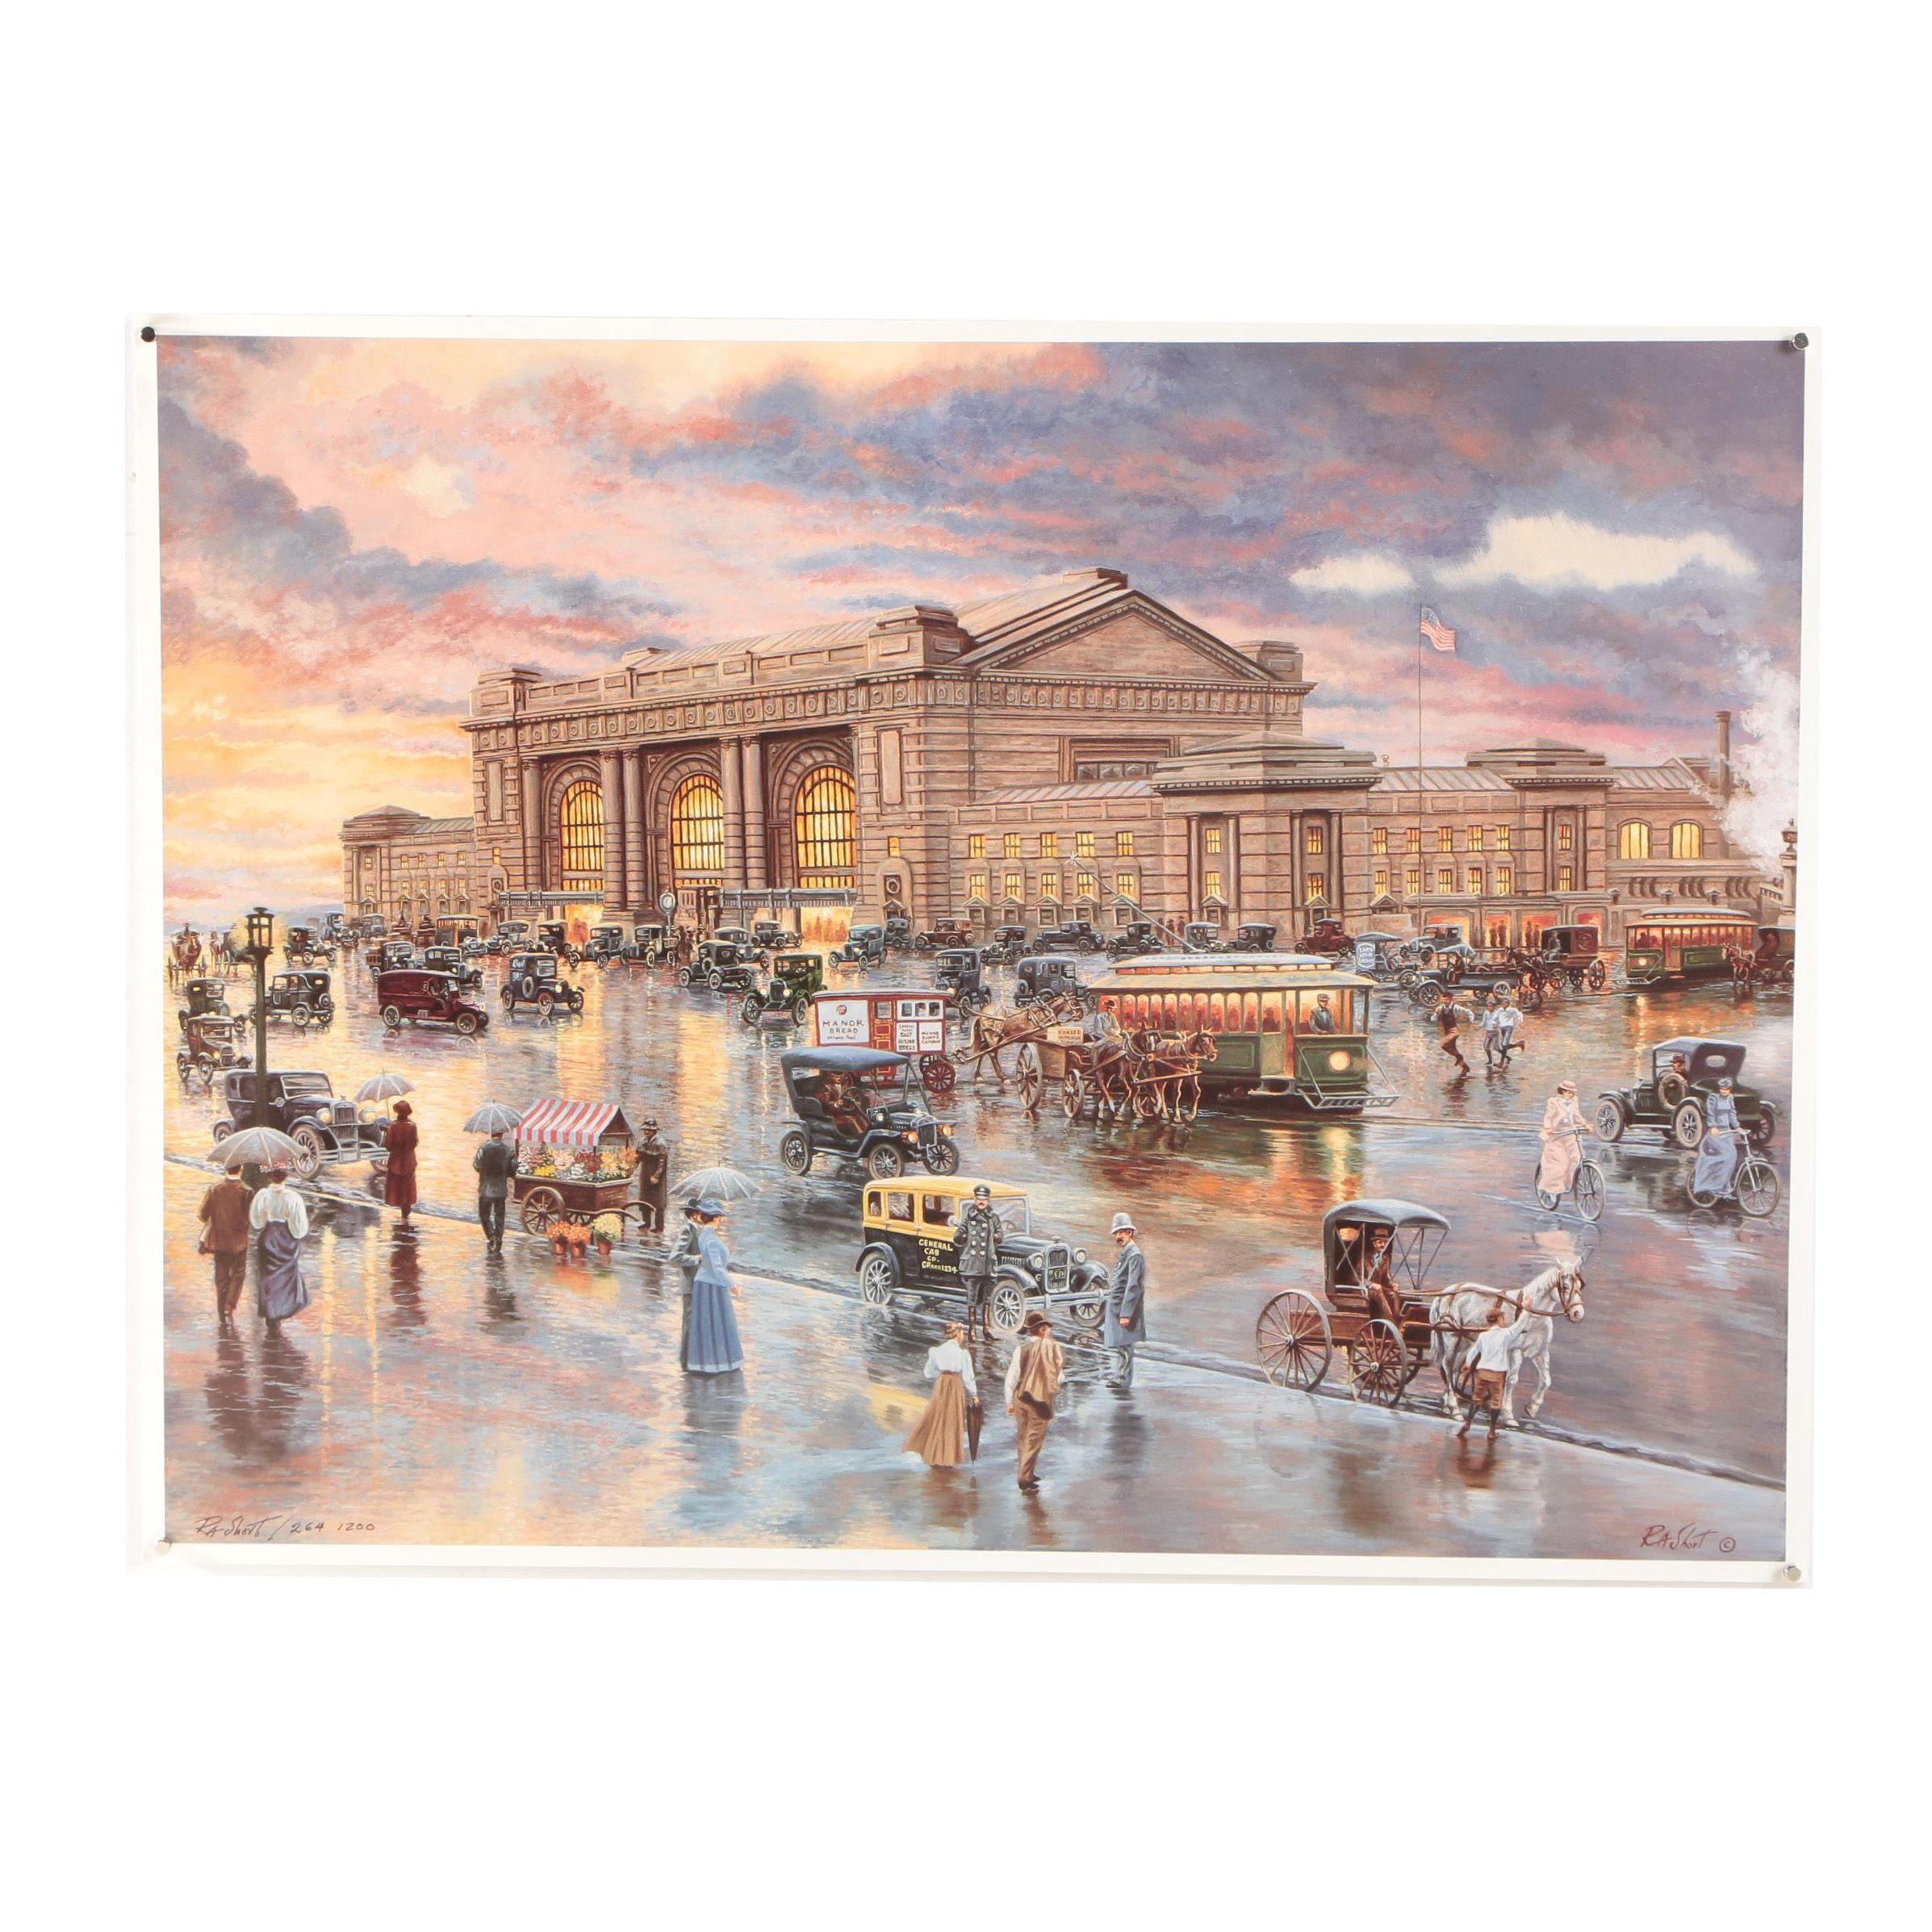 R.A. Short Limited Edition Offset Lithograph Print of Kansas City, Missouri